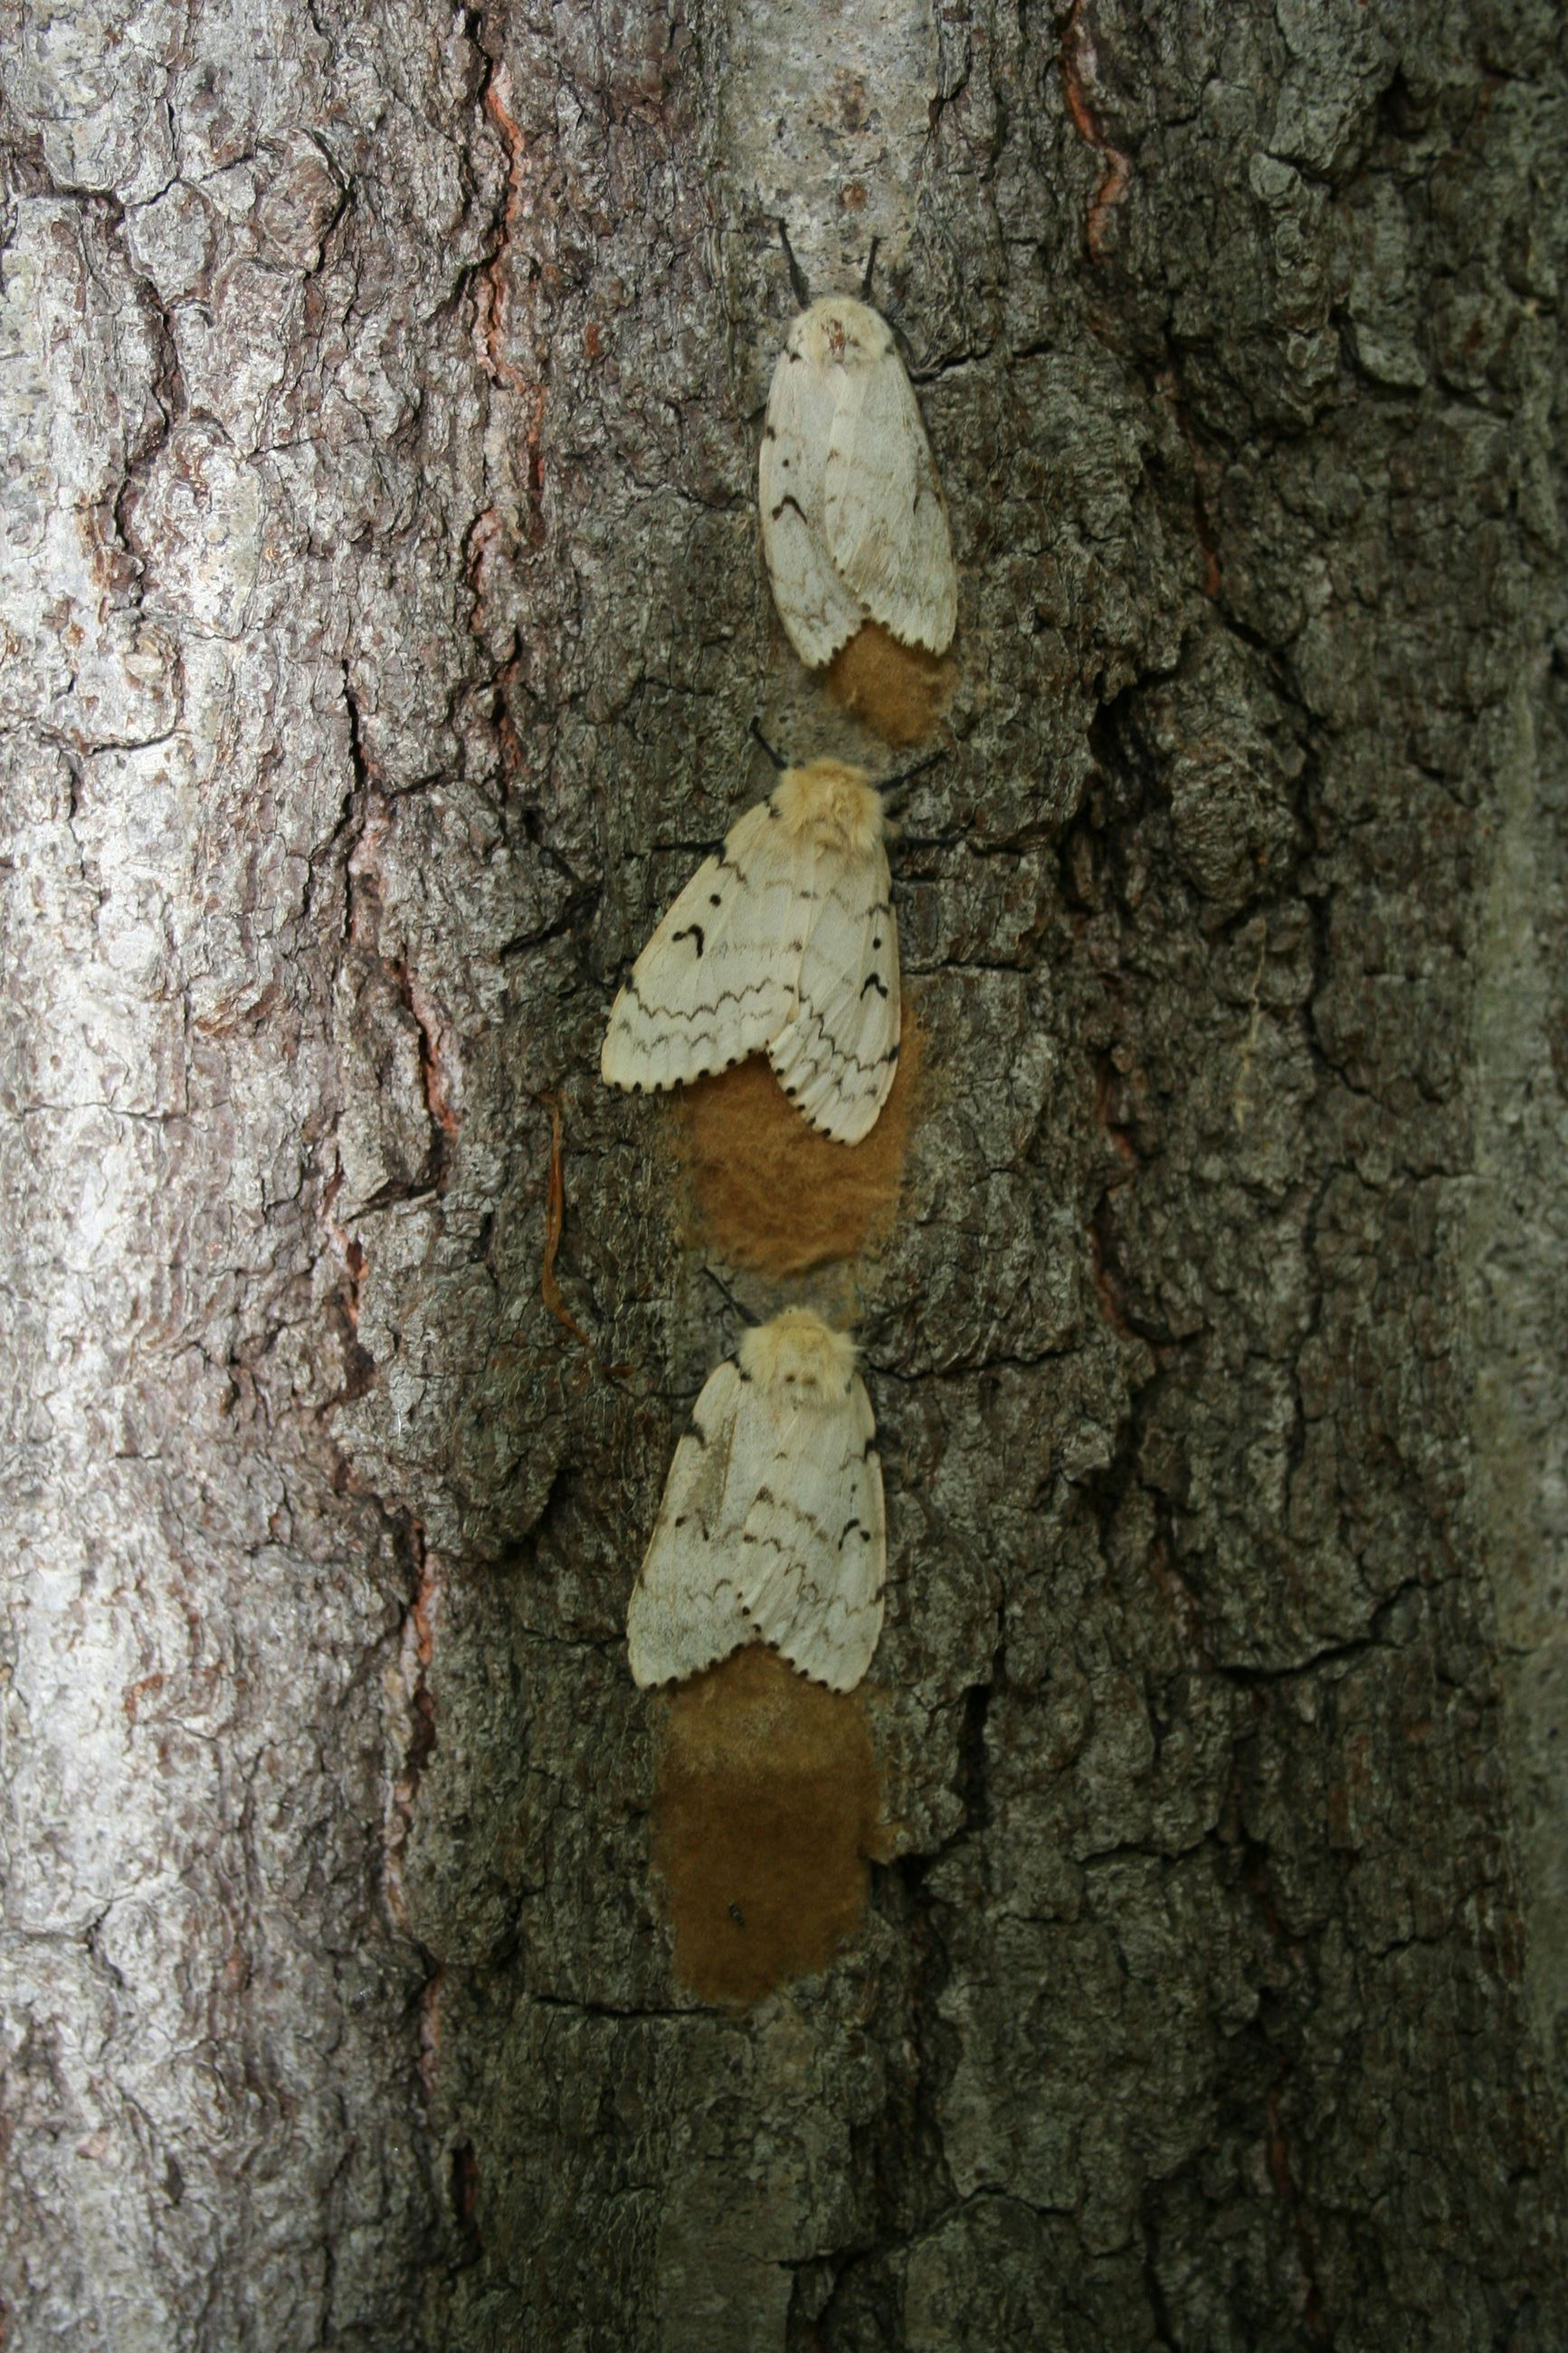 gypsy_moth_egg_masses[1]